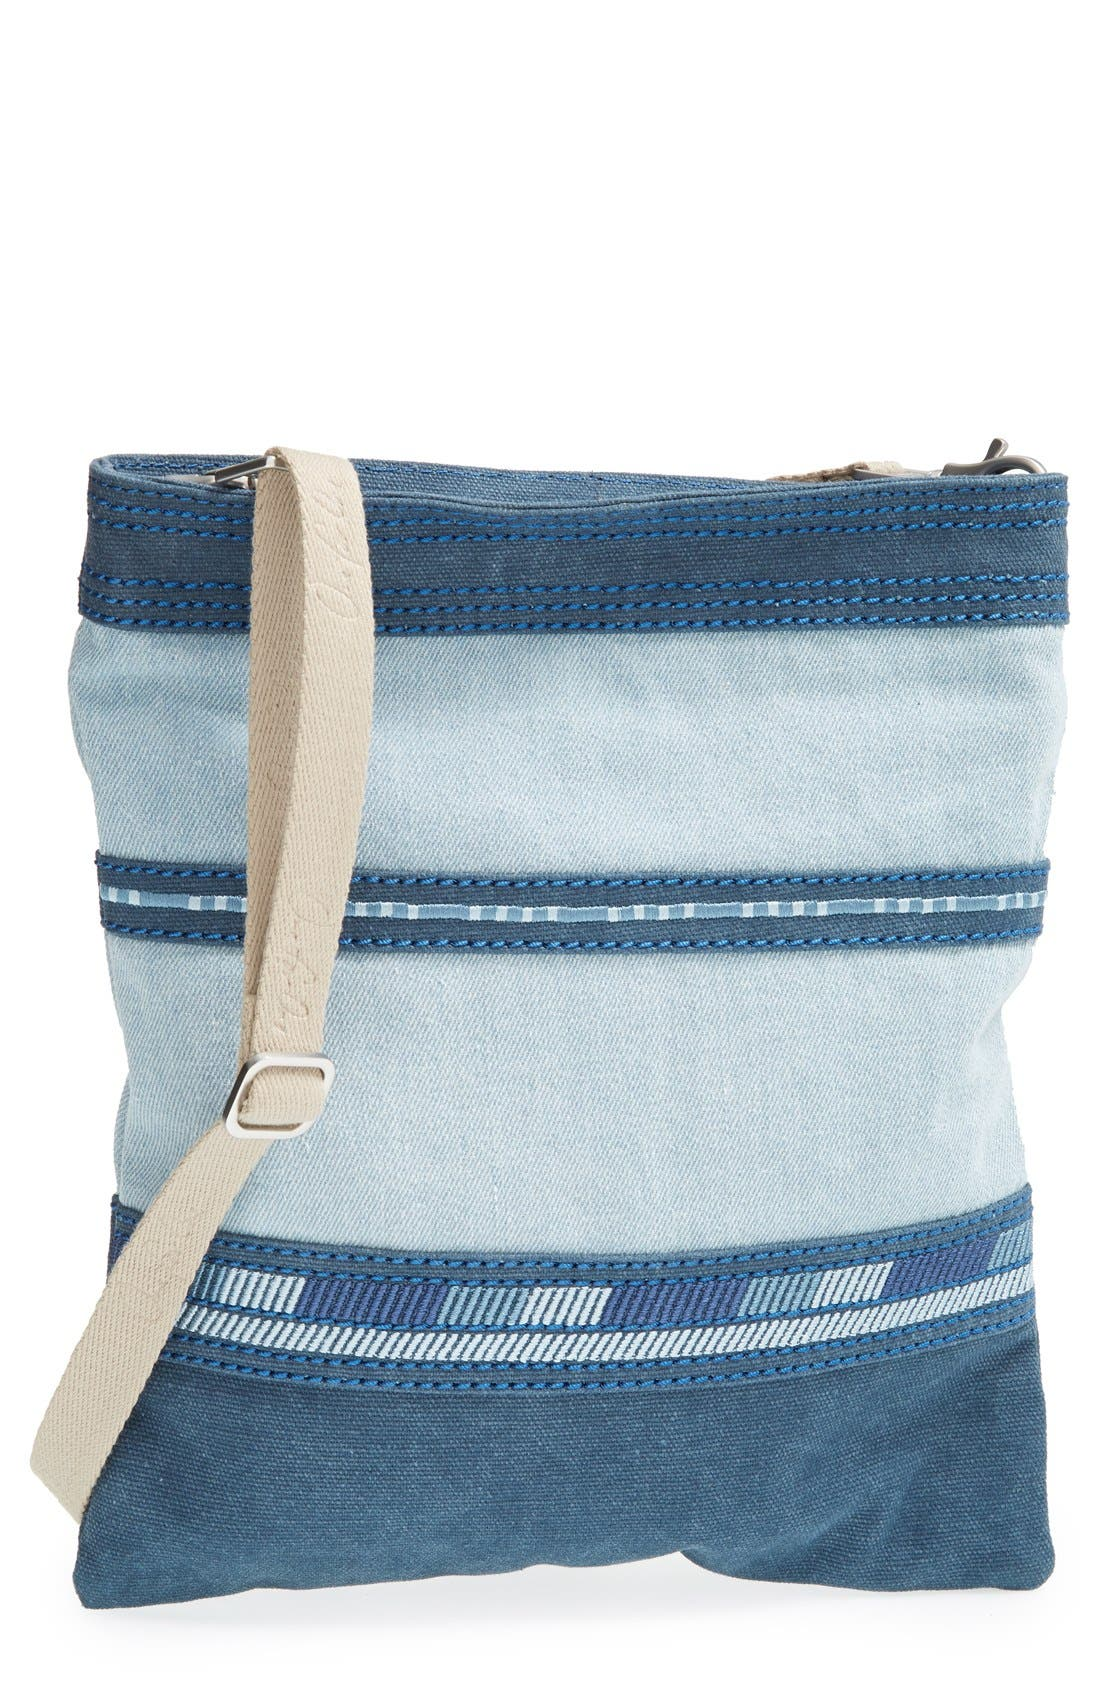 Main Image - TOMS Stripe Denim Crossbody Bag